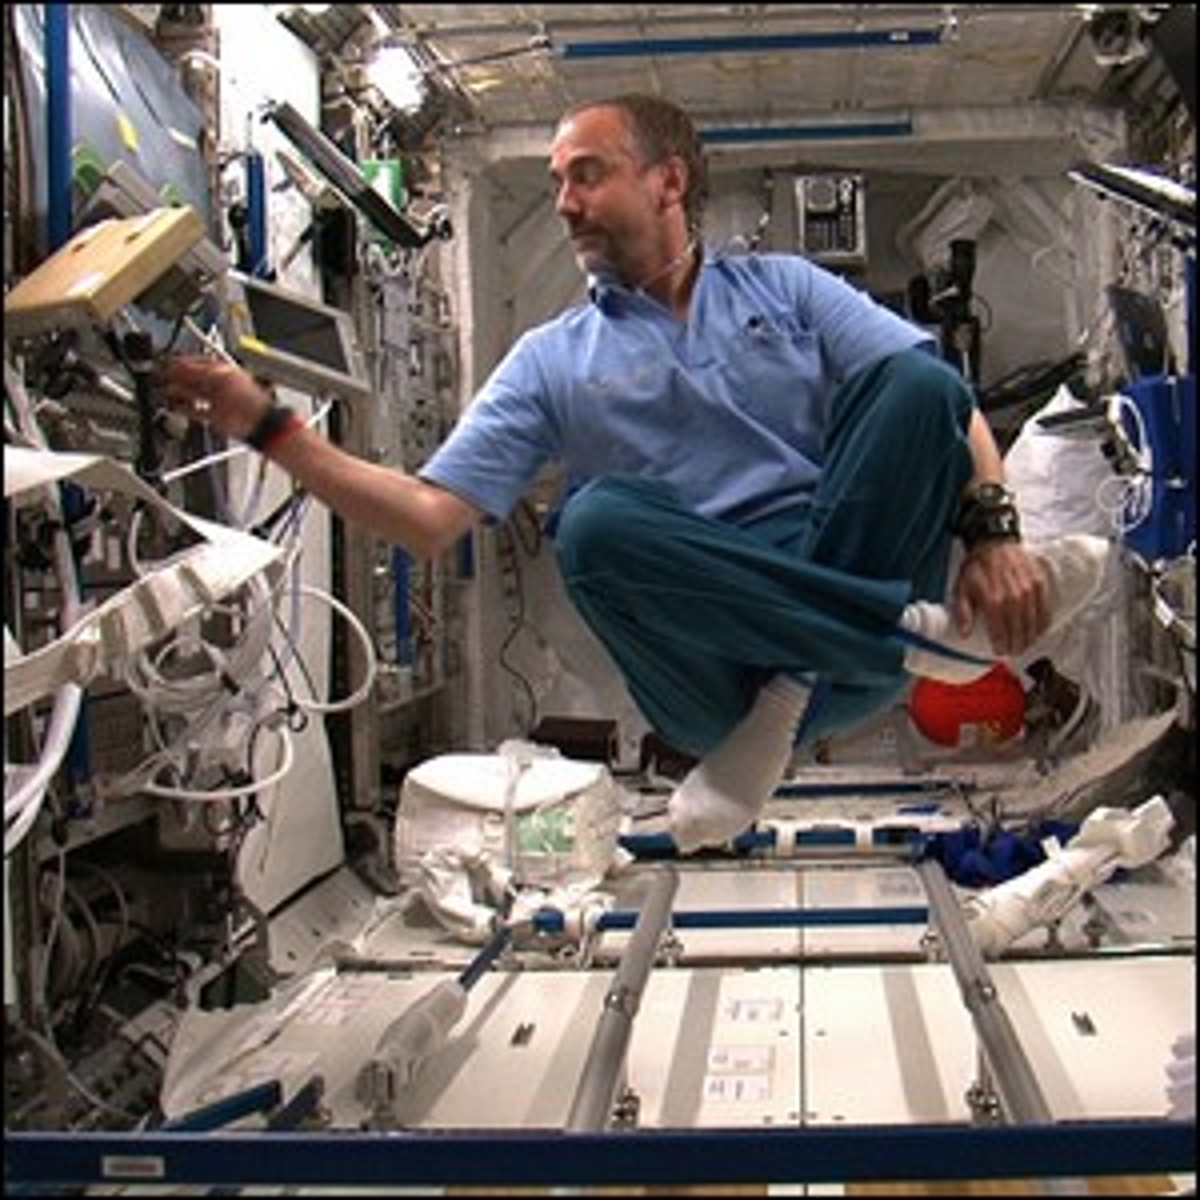 A photo of Richard Garriott during his time aboard the International Space Station.